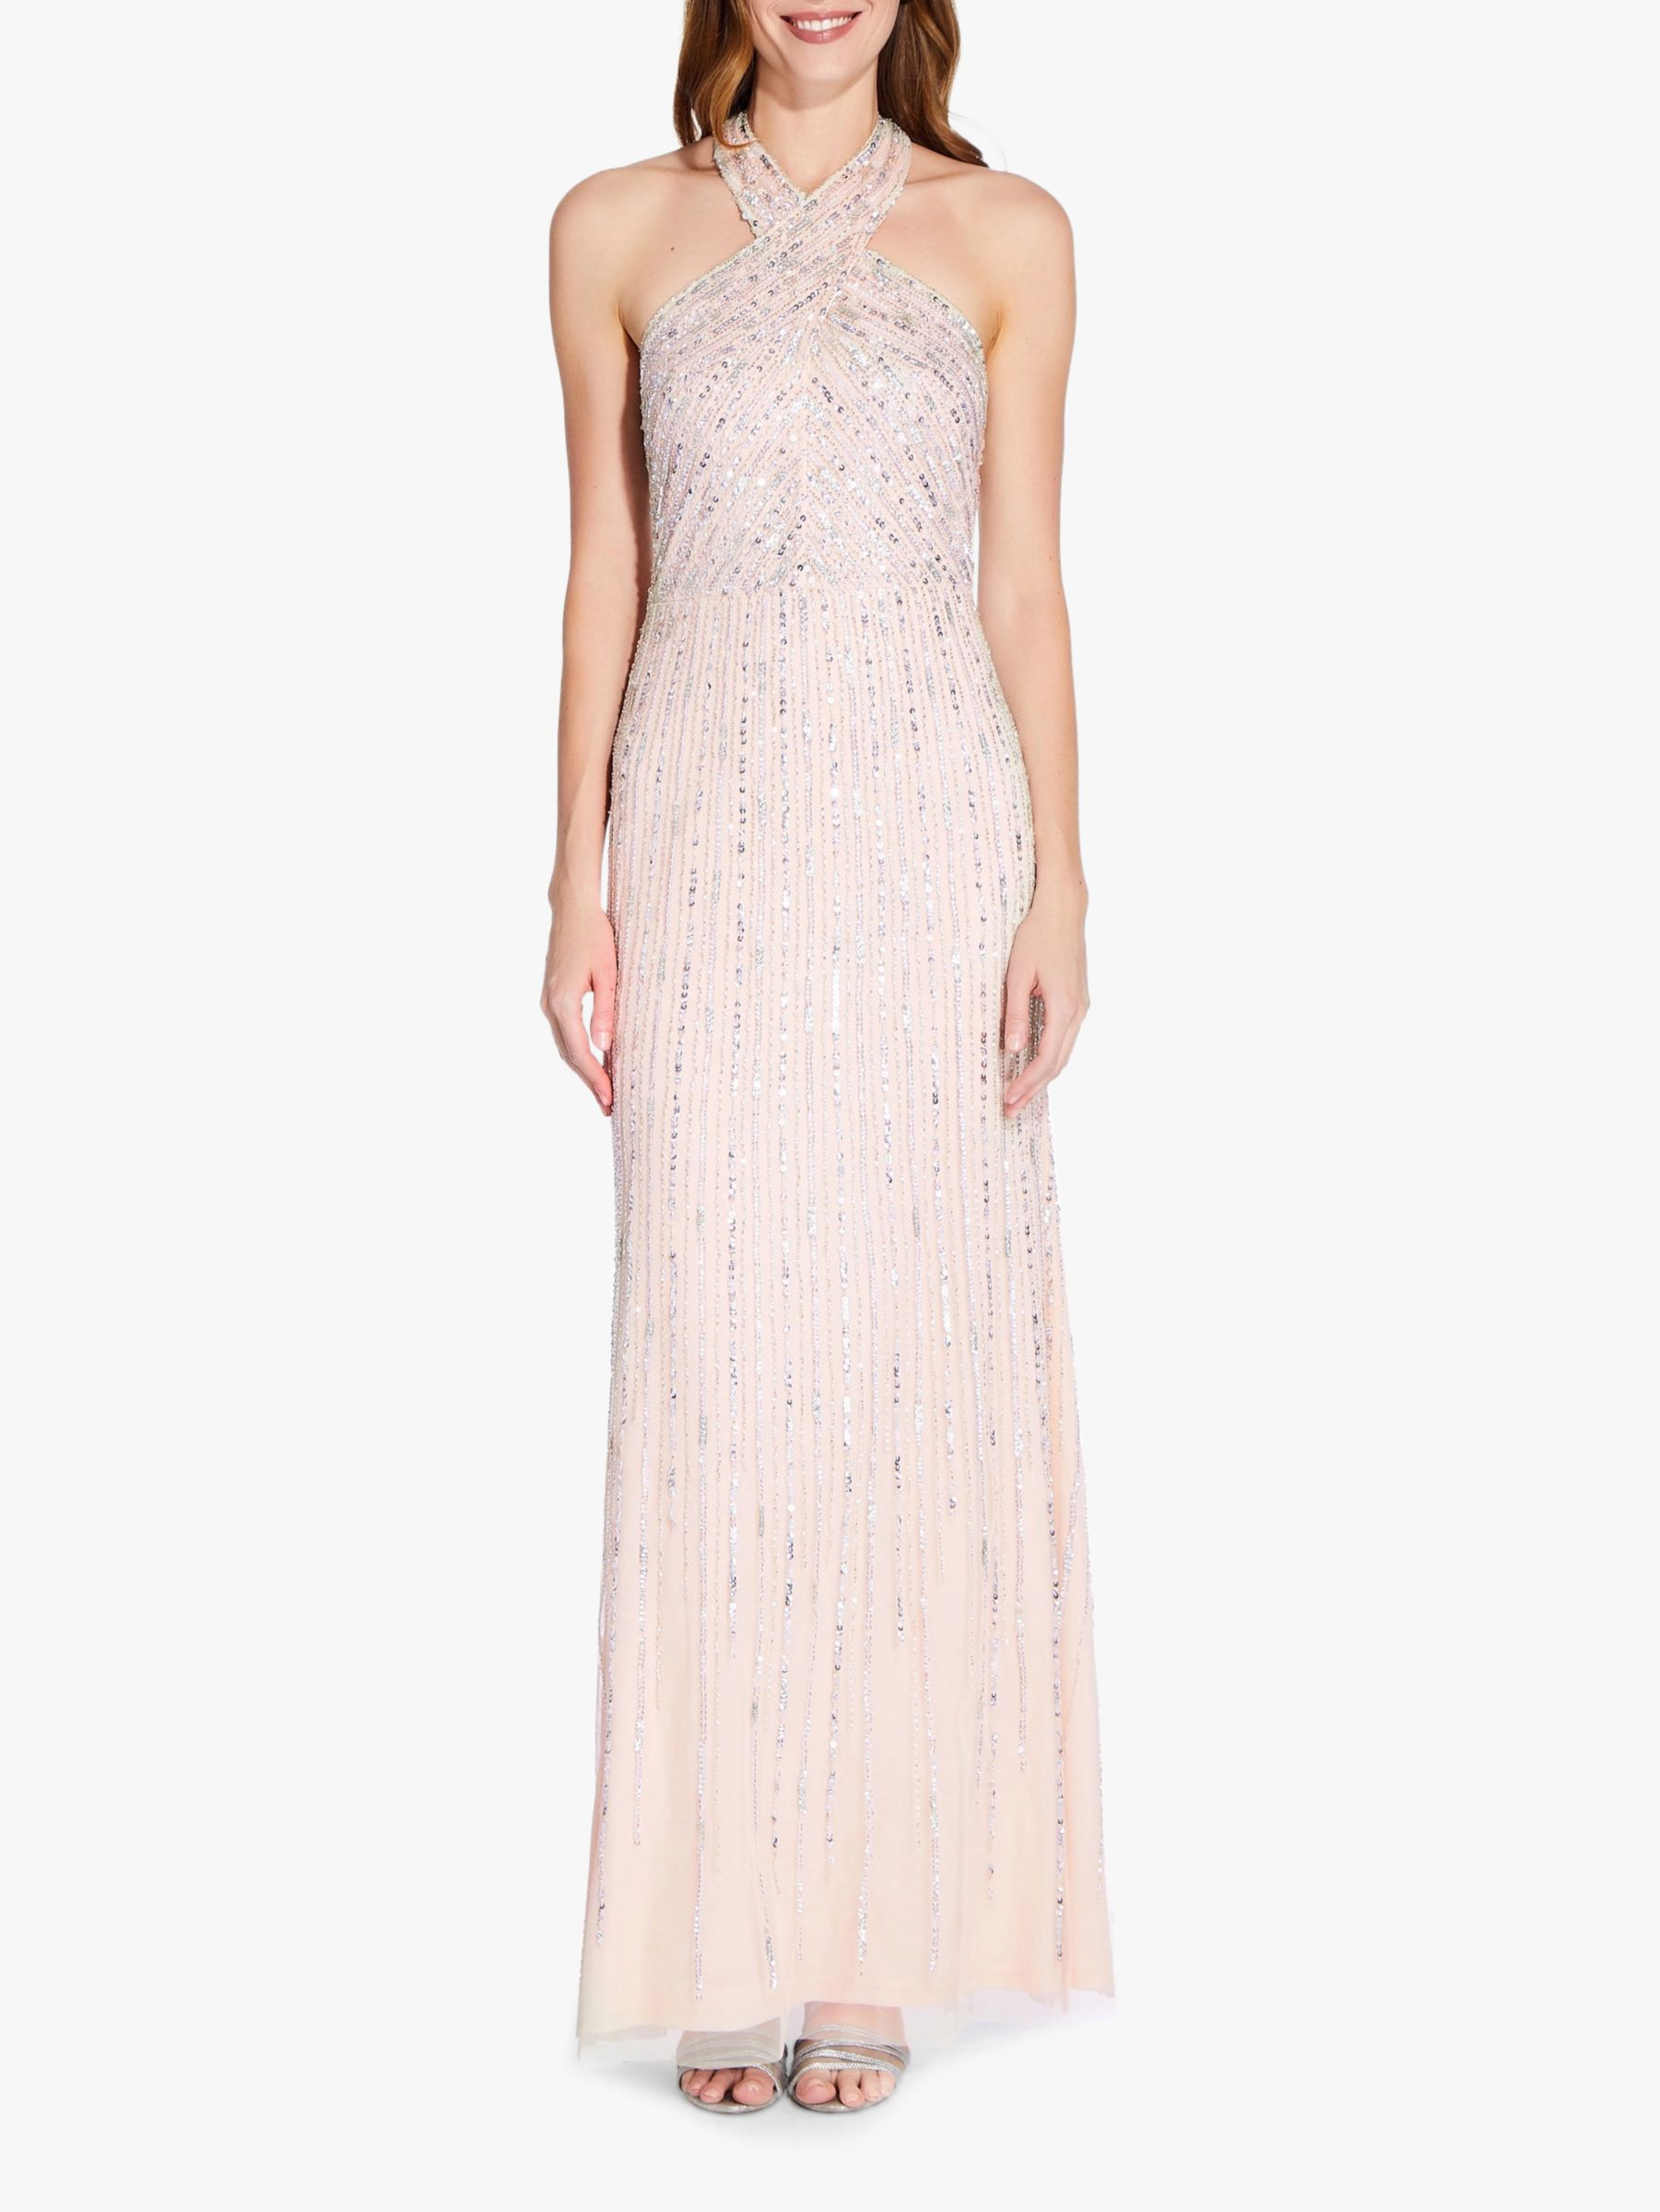 Adrianna Papell Adrianna Papell Halter Beaded Gown, Pale Nude